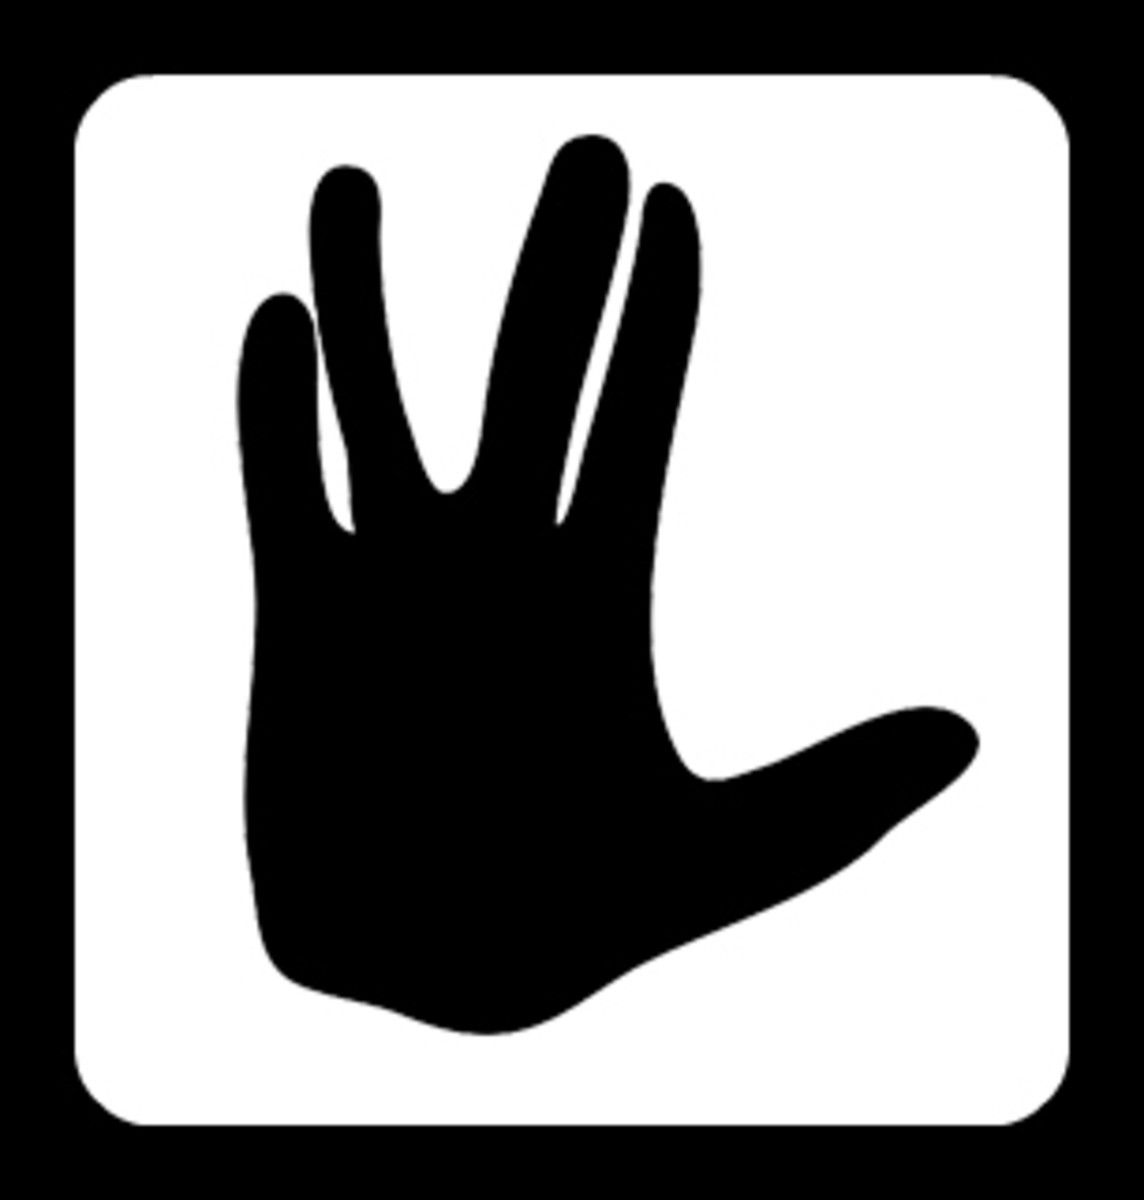 The vulcan salute, popularized by Leonard Nimoy of Star Trek Fame, another form of respect.